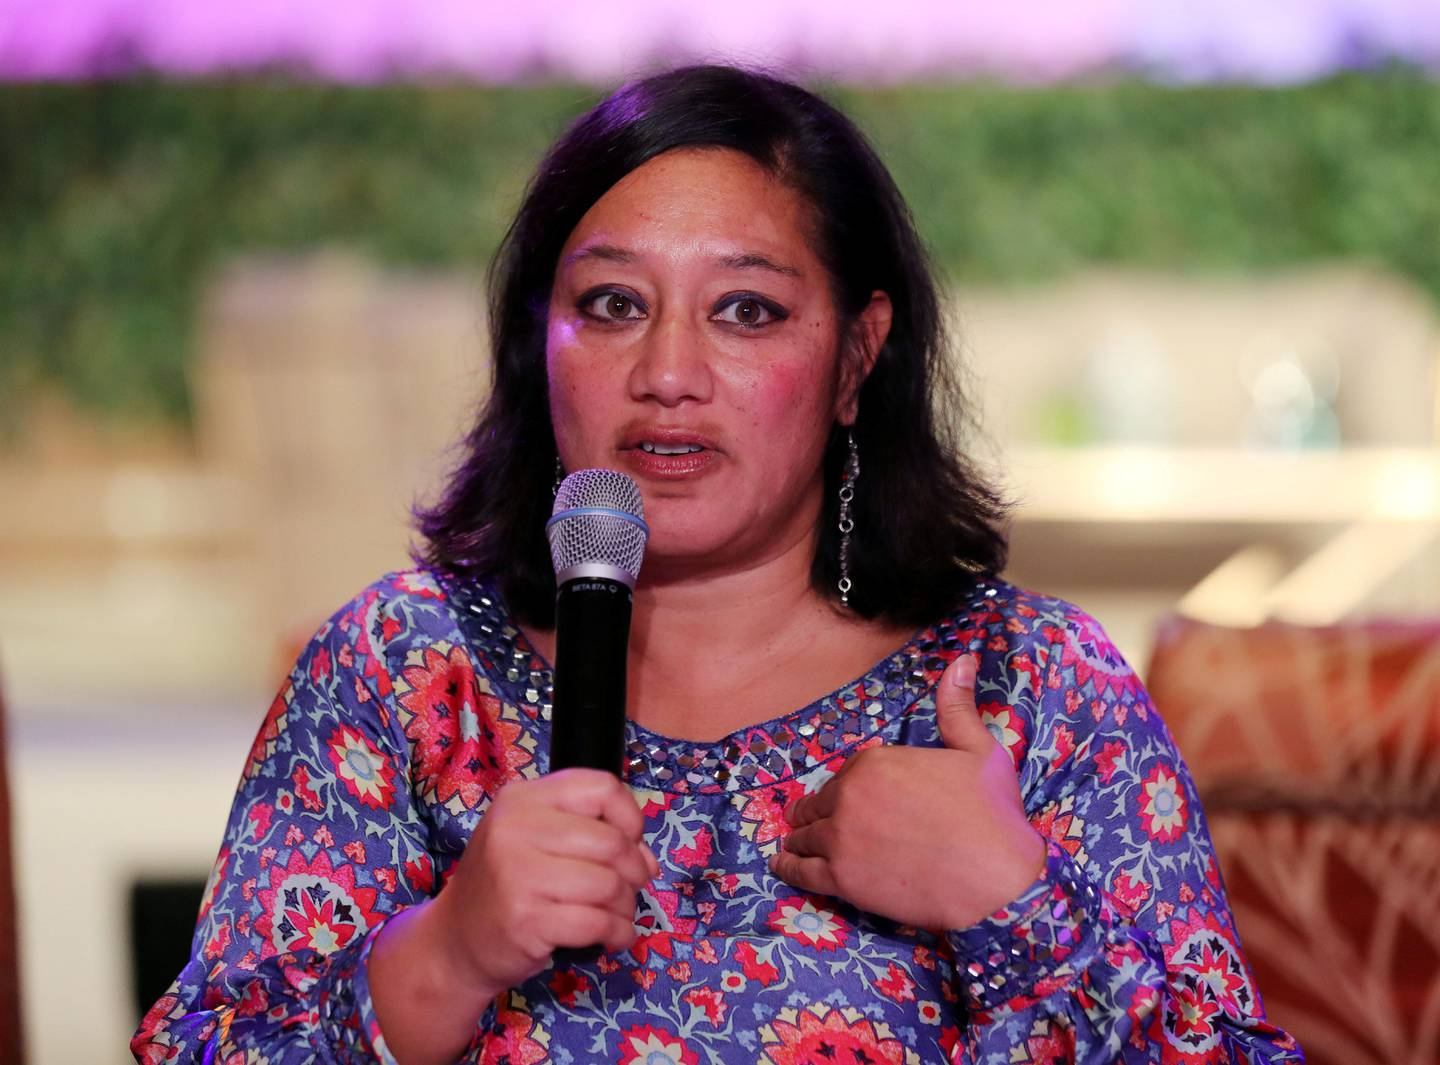 Dubai, United Arab Emirates - October 26th, 2017: Dimple Sahni (senior director impact investing at Anthos fund and asset management) talk about Financial literacy at the 19TH Global WIL Economic Forum. Thursday, October 26th, 2017 at The Ritz-Carlton, Dubai International Financial Centre, Dubai. Chris Whiteoak / The National